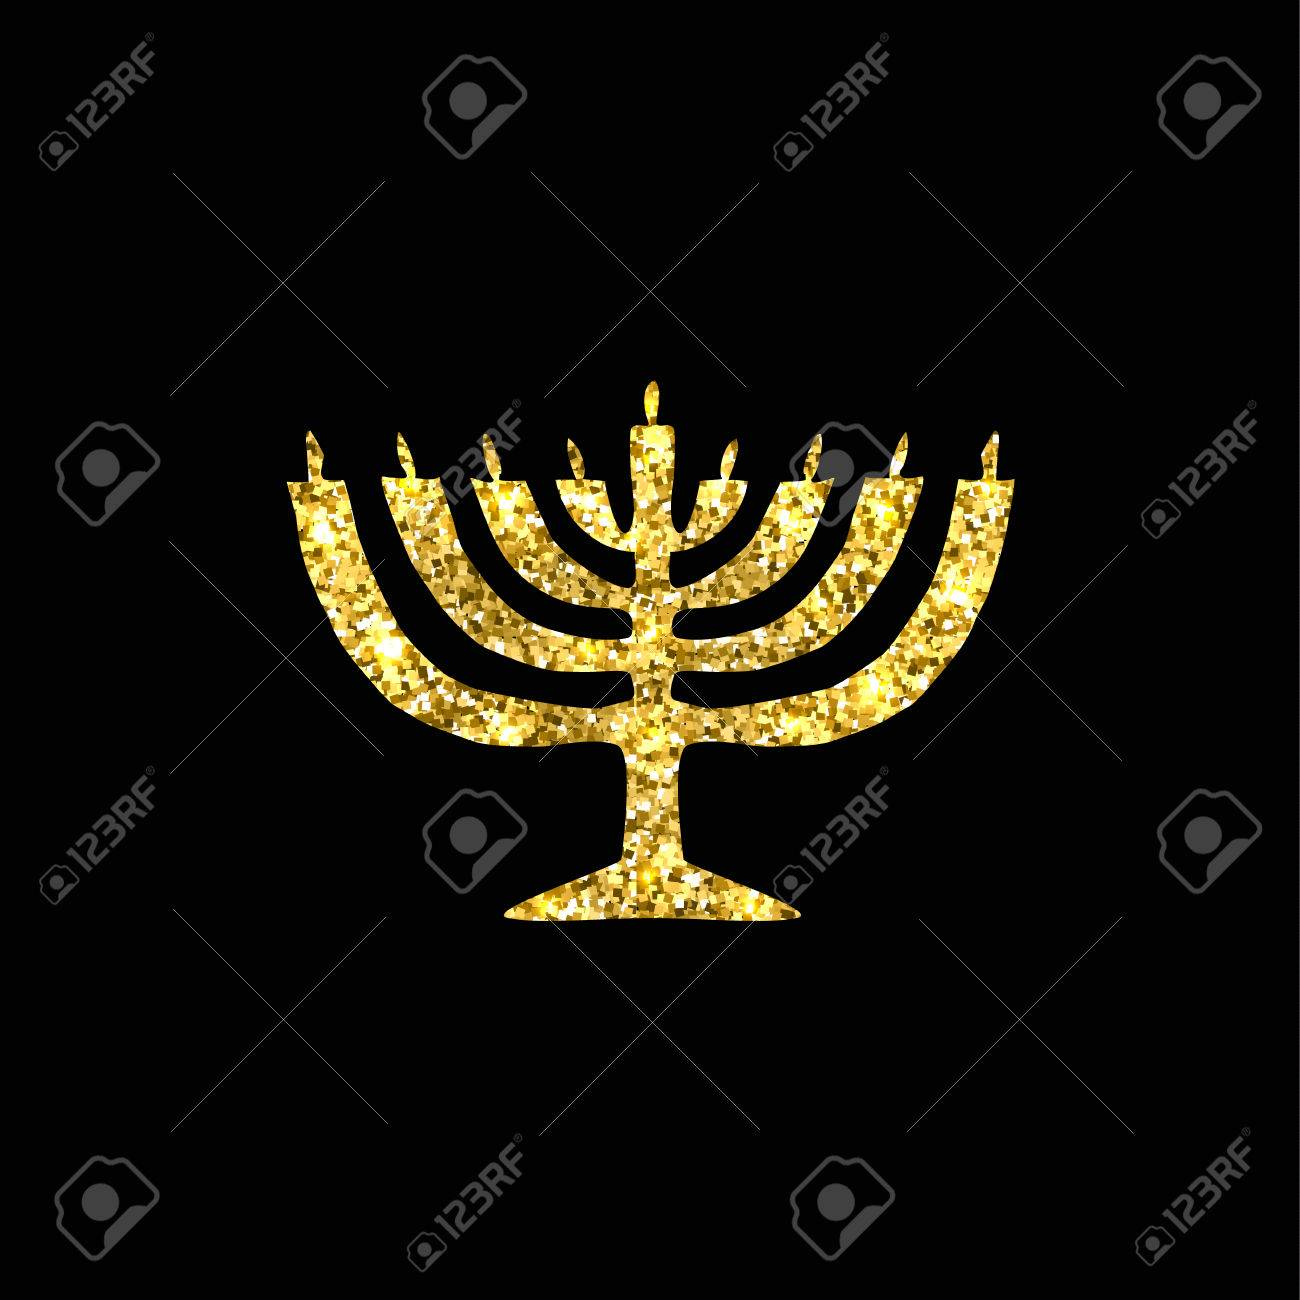 banque d images hanukkah bougeoir silhouette doree or fete religieuse juive de hanoukka vector illustration sur un fond noir